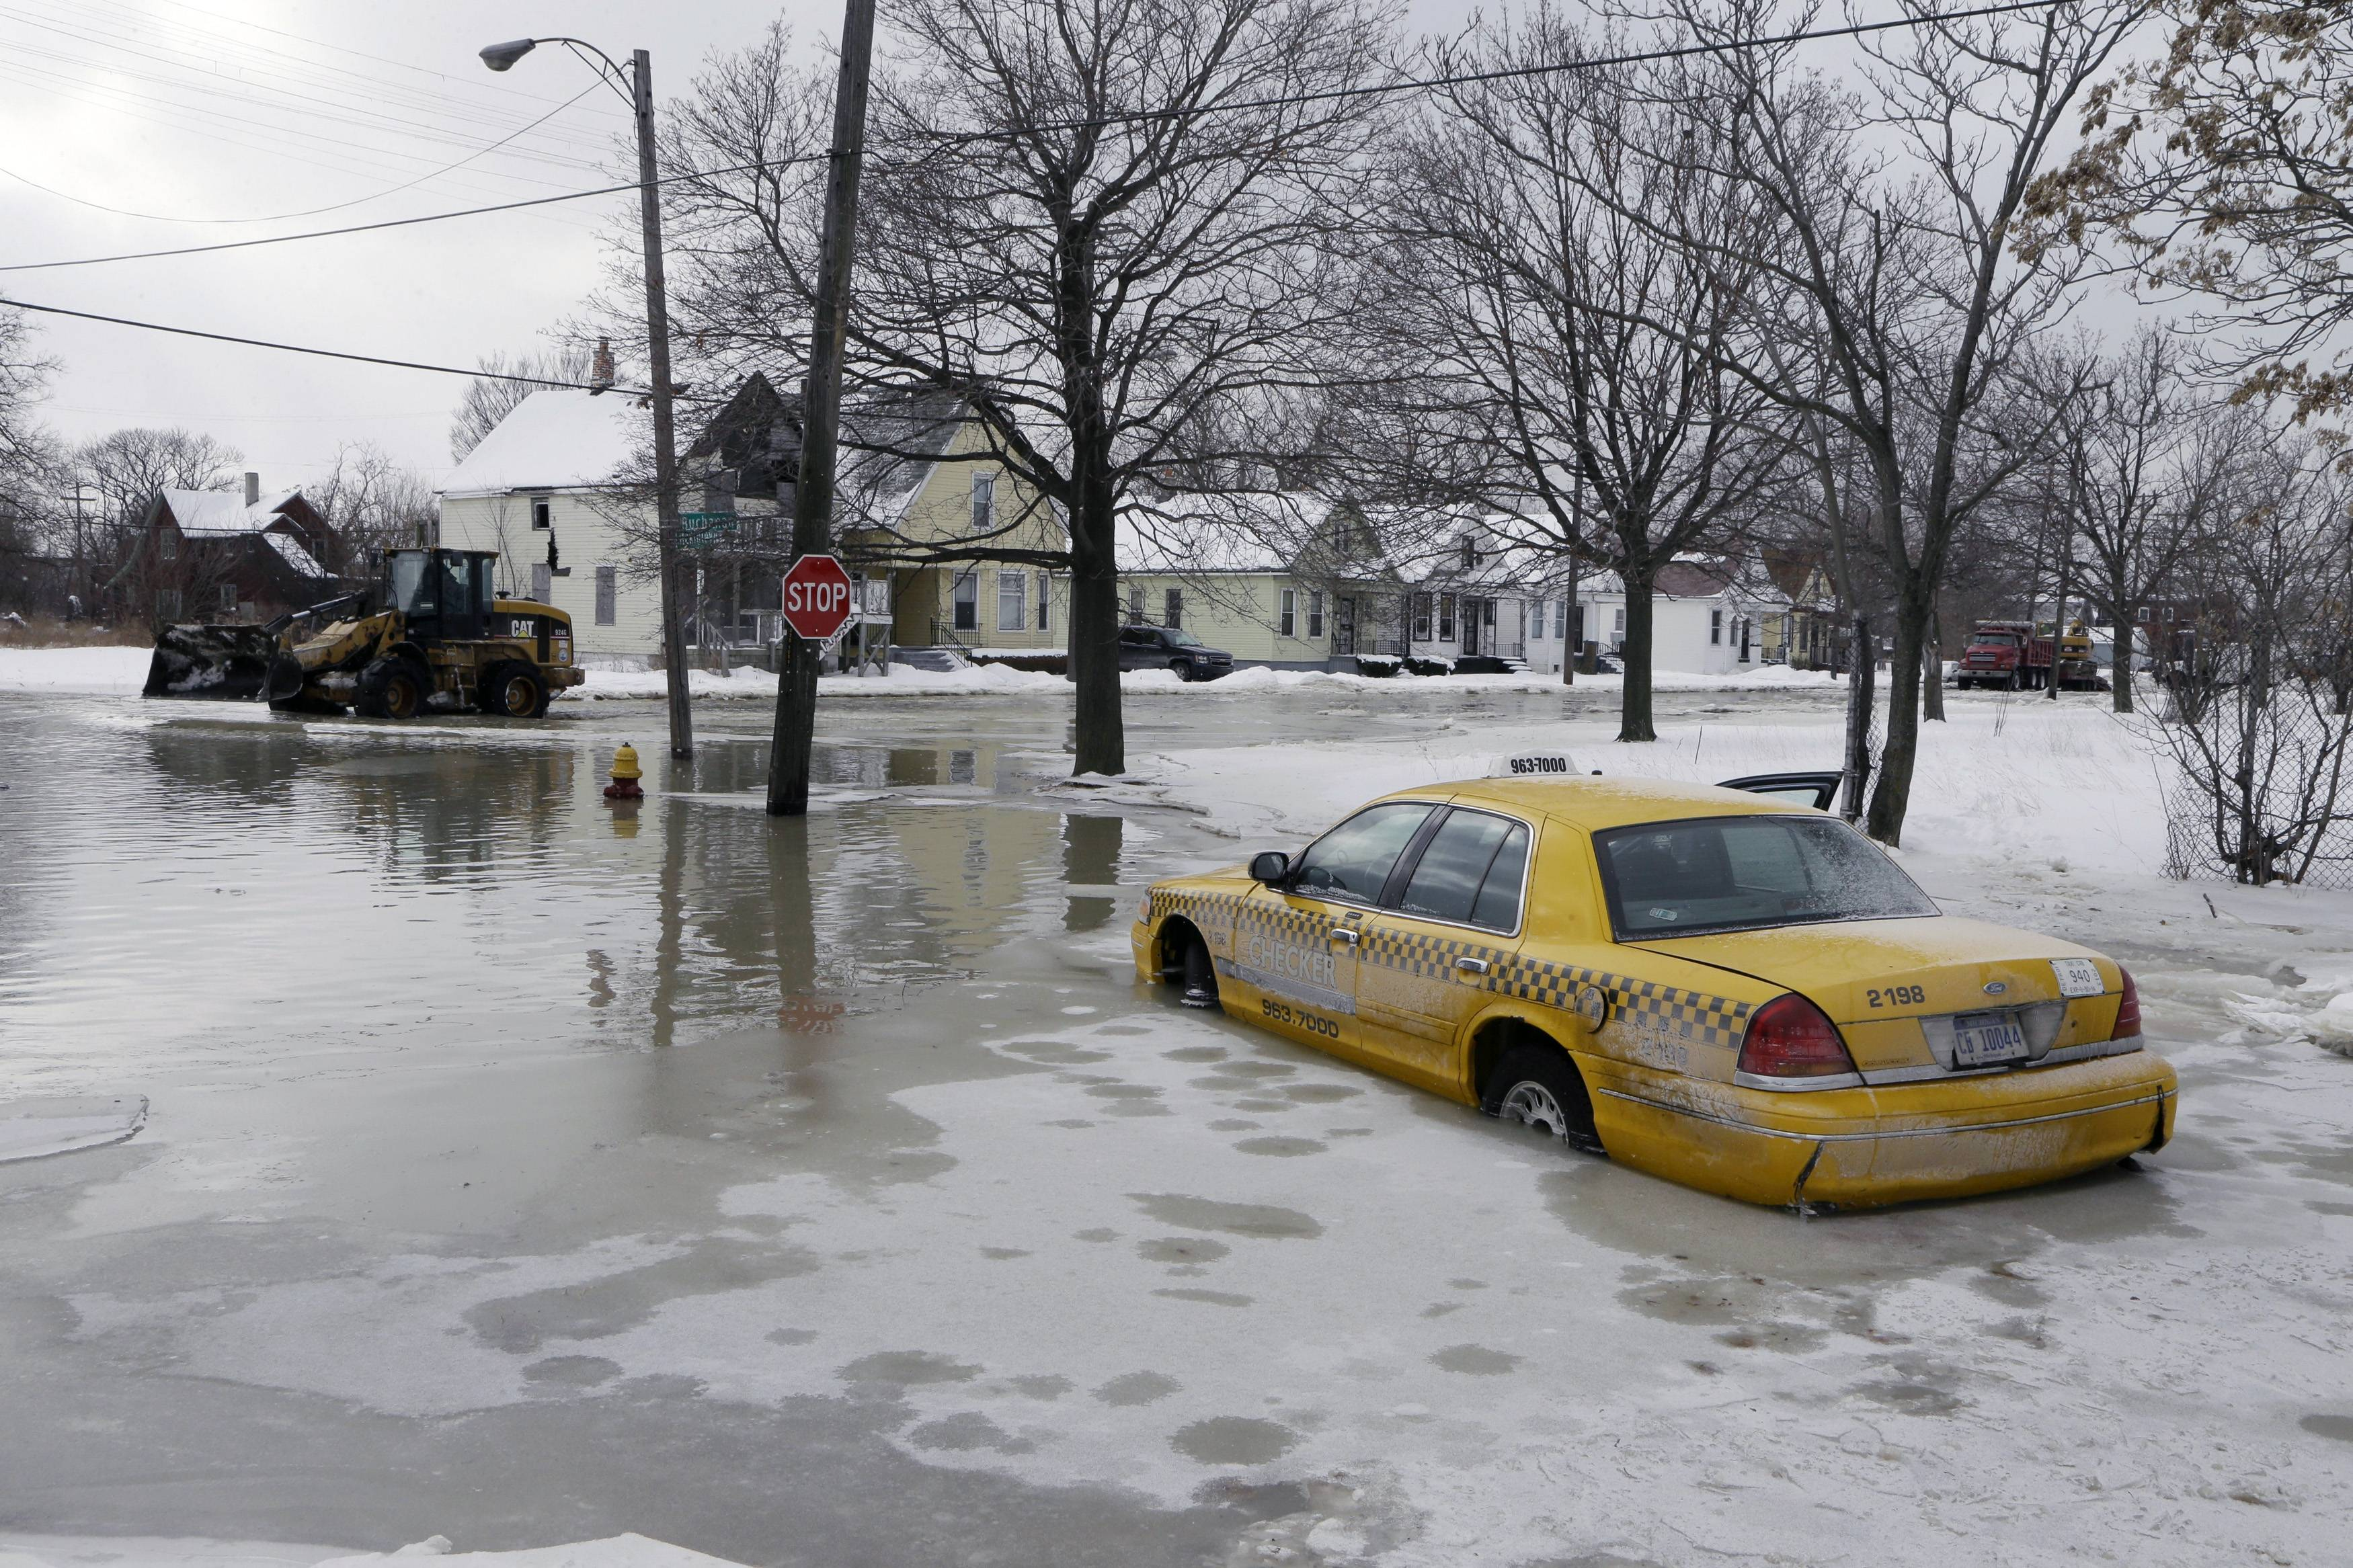 A taxi cab is surrounded by water on a flooded street after a water main break flooded several blocks in Detroit.